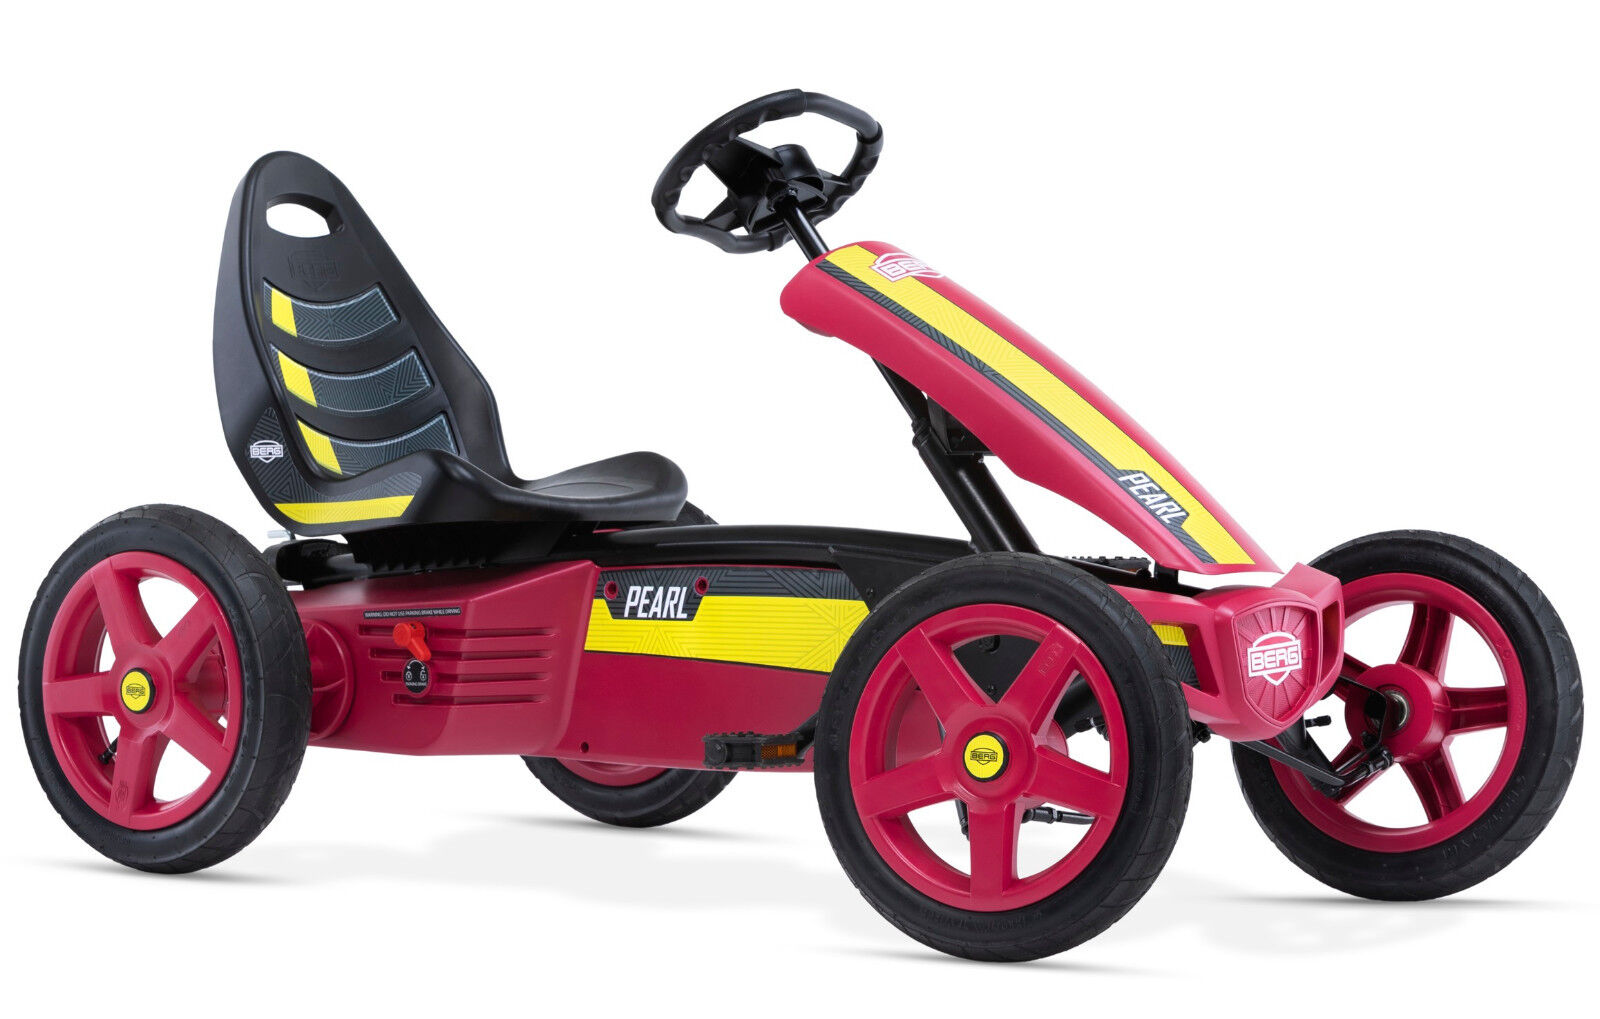 Berg Rally Kids Pedal Car  Go Kart Pearl 4 - 12 Years NEW  online sale